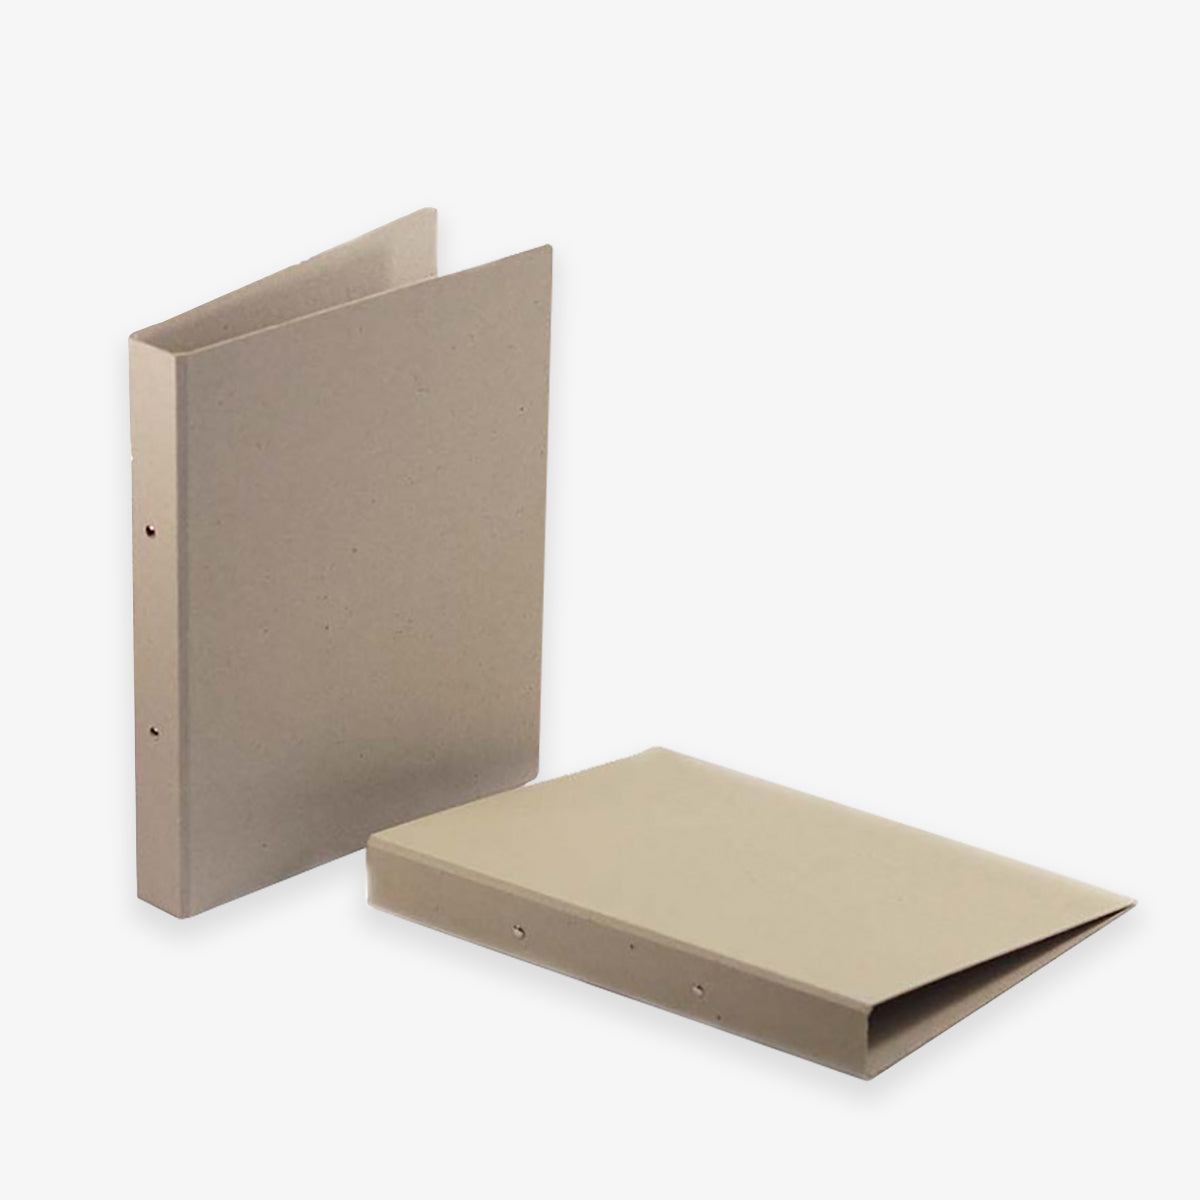 products/Ringbinder_Recycledgreyboard_02.jpg